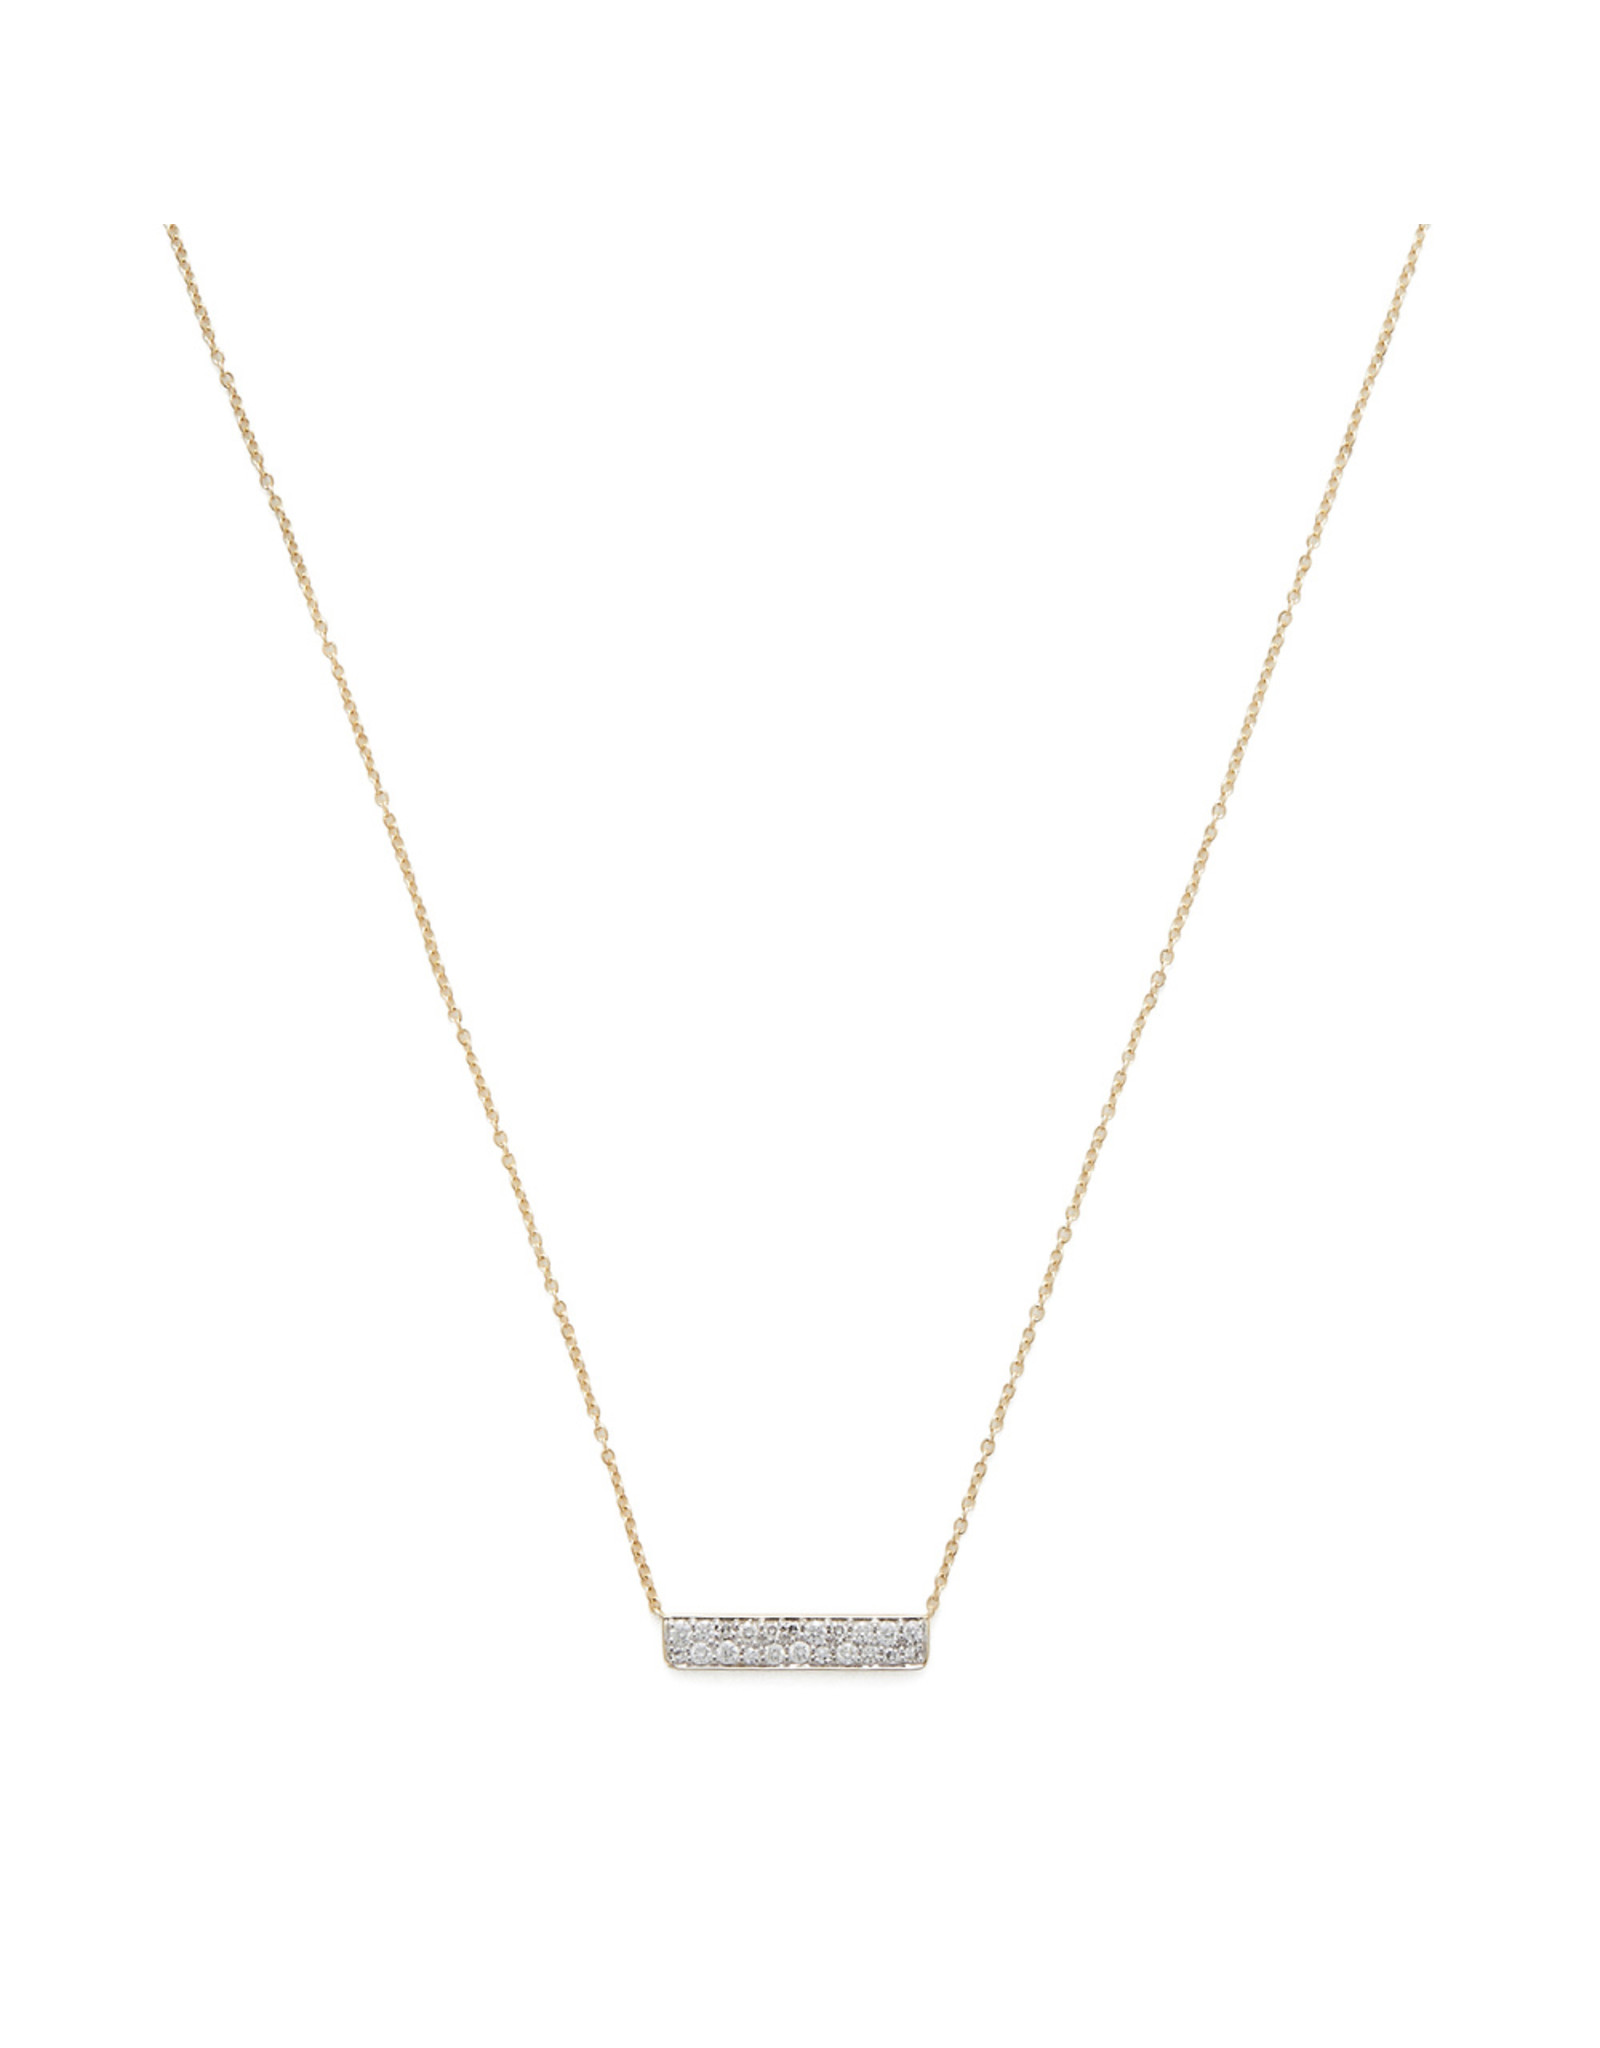 Eriness Eriness Diamond Staple Yellow-Gold Necklace - Yellow Gold / White Diamond